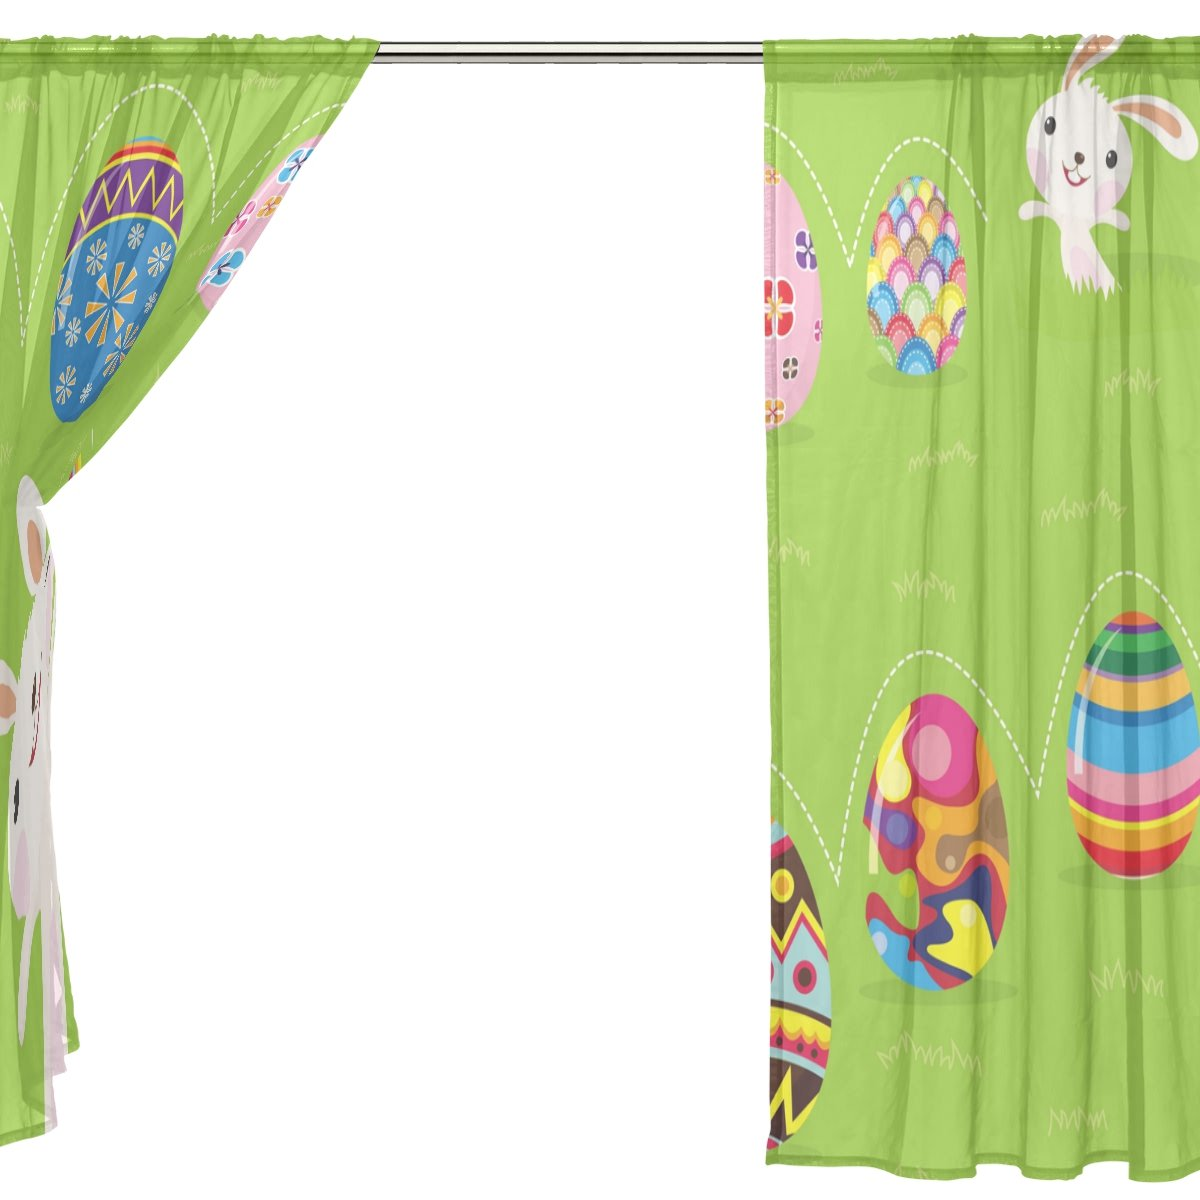 SEULIFE Window Sheer Curtain Easter Bunny Rabbit Eggs Flower Voile Curtain Drapes for Door Kitchen Living Room Bedroom 55x78 inches 2 Panels